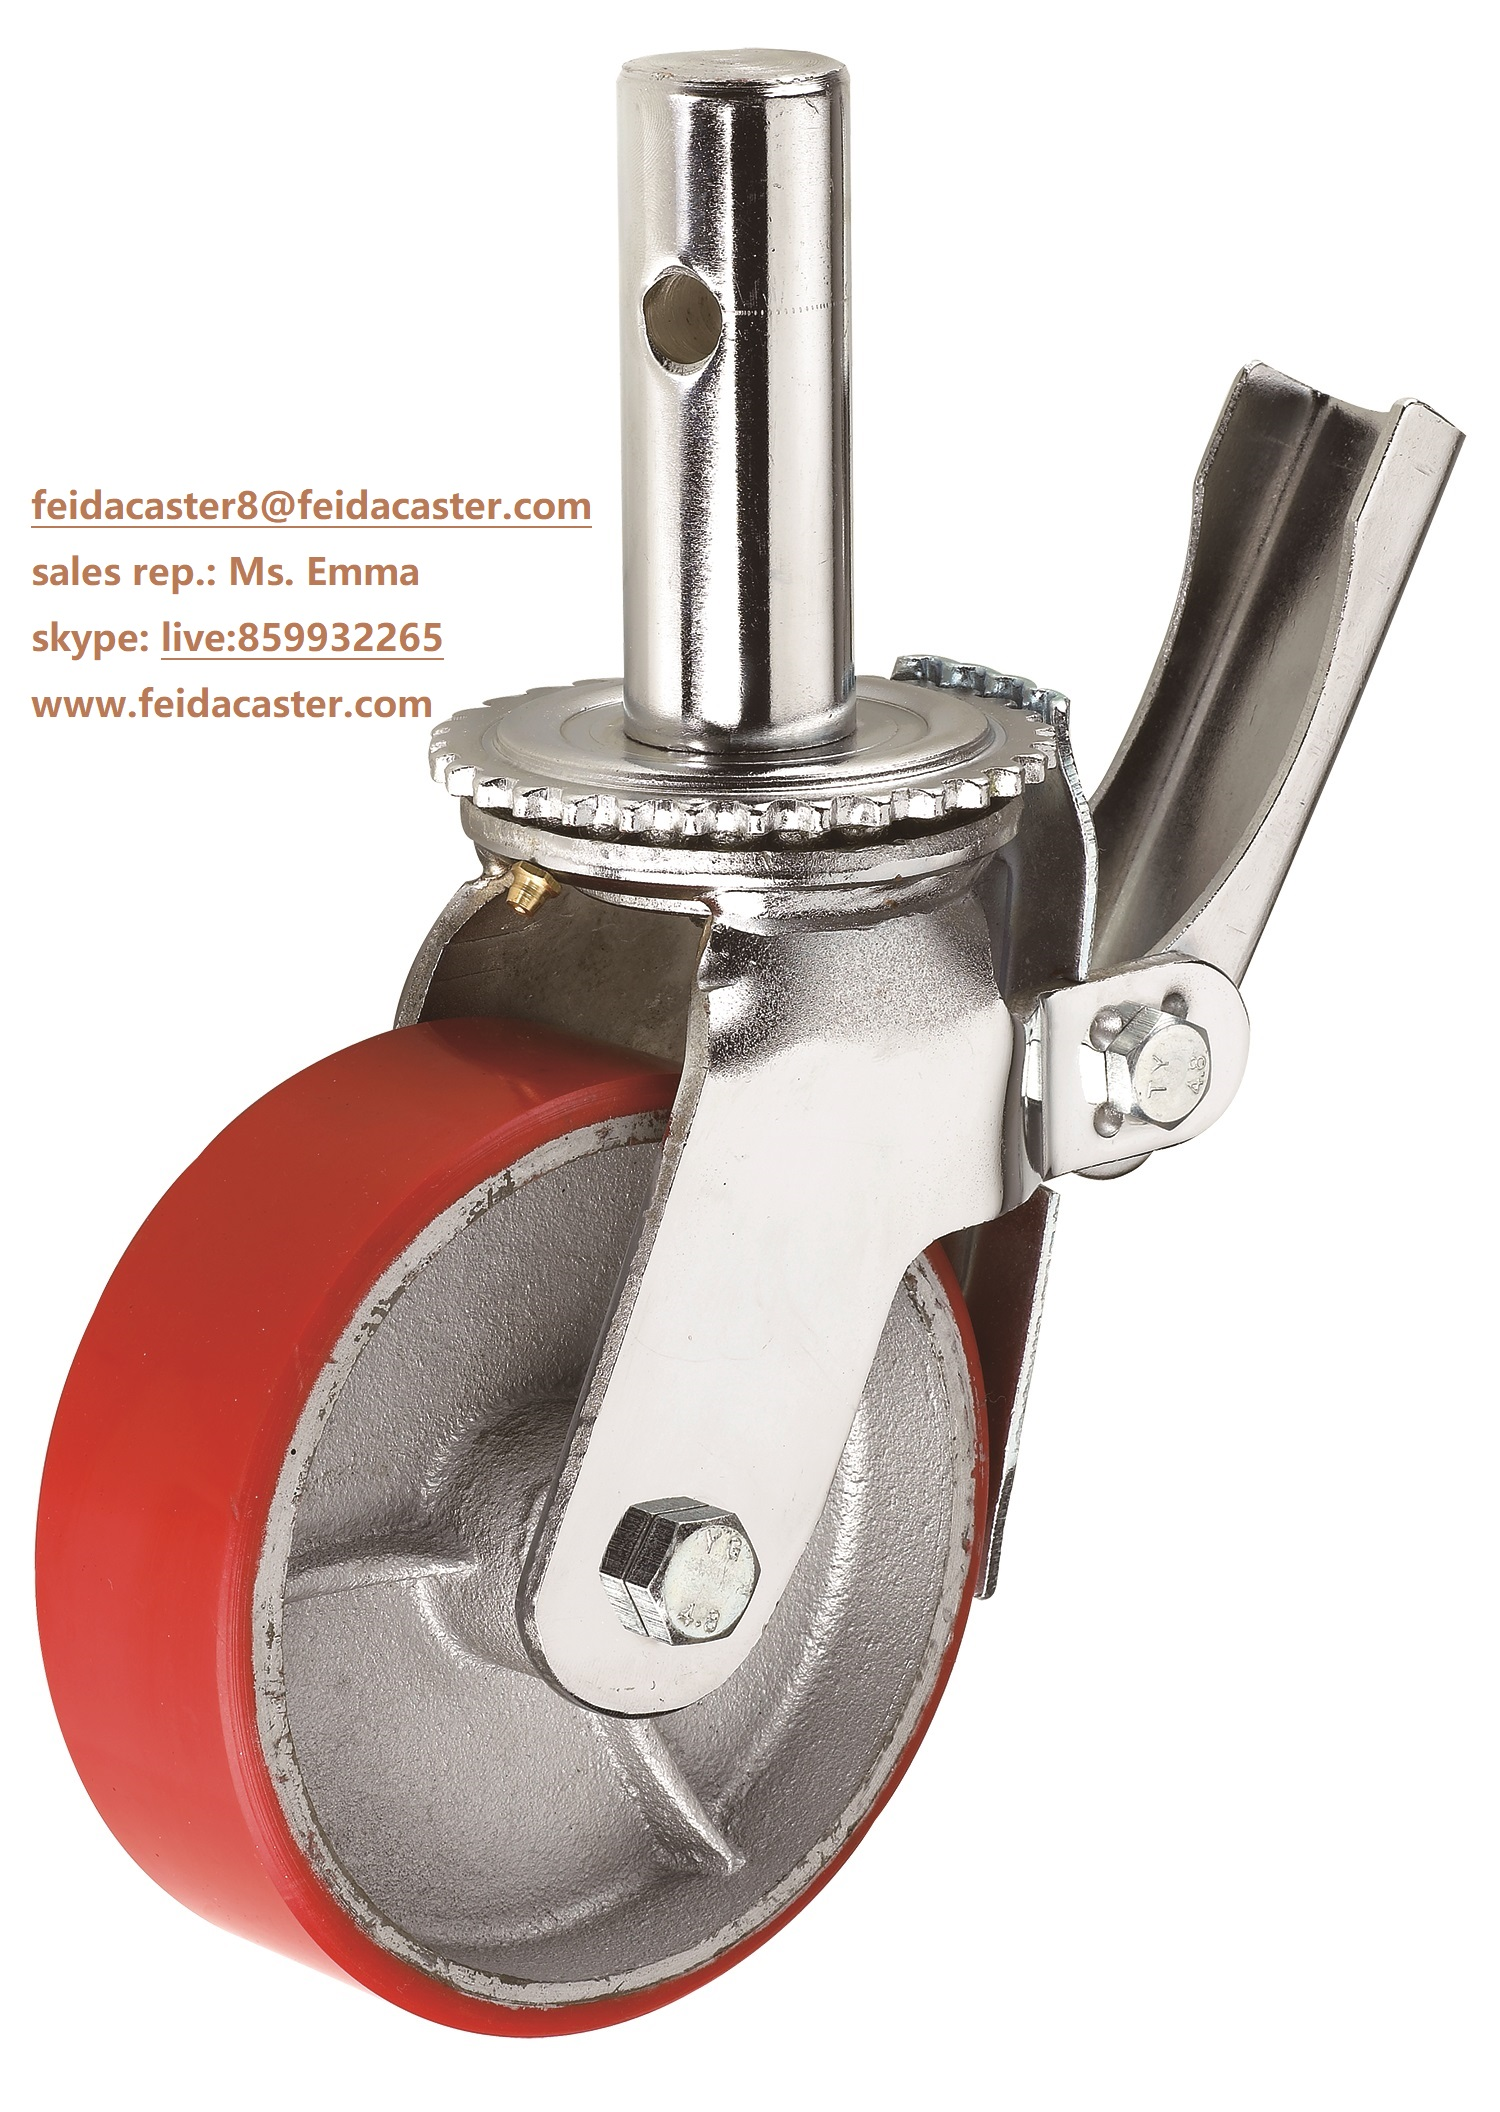 [Feida]Scaffolding caster heavy duty PU casting iron load heavy weight caster manufacturer